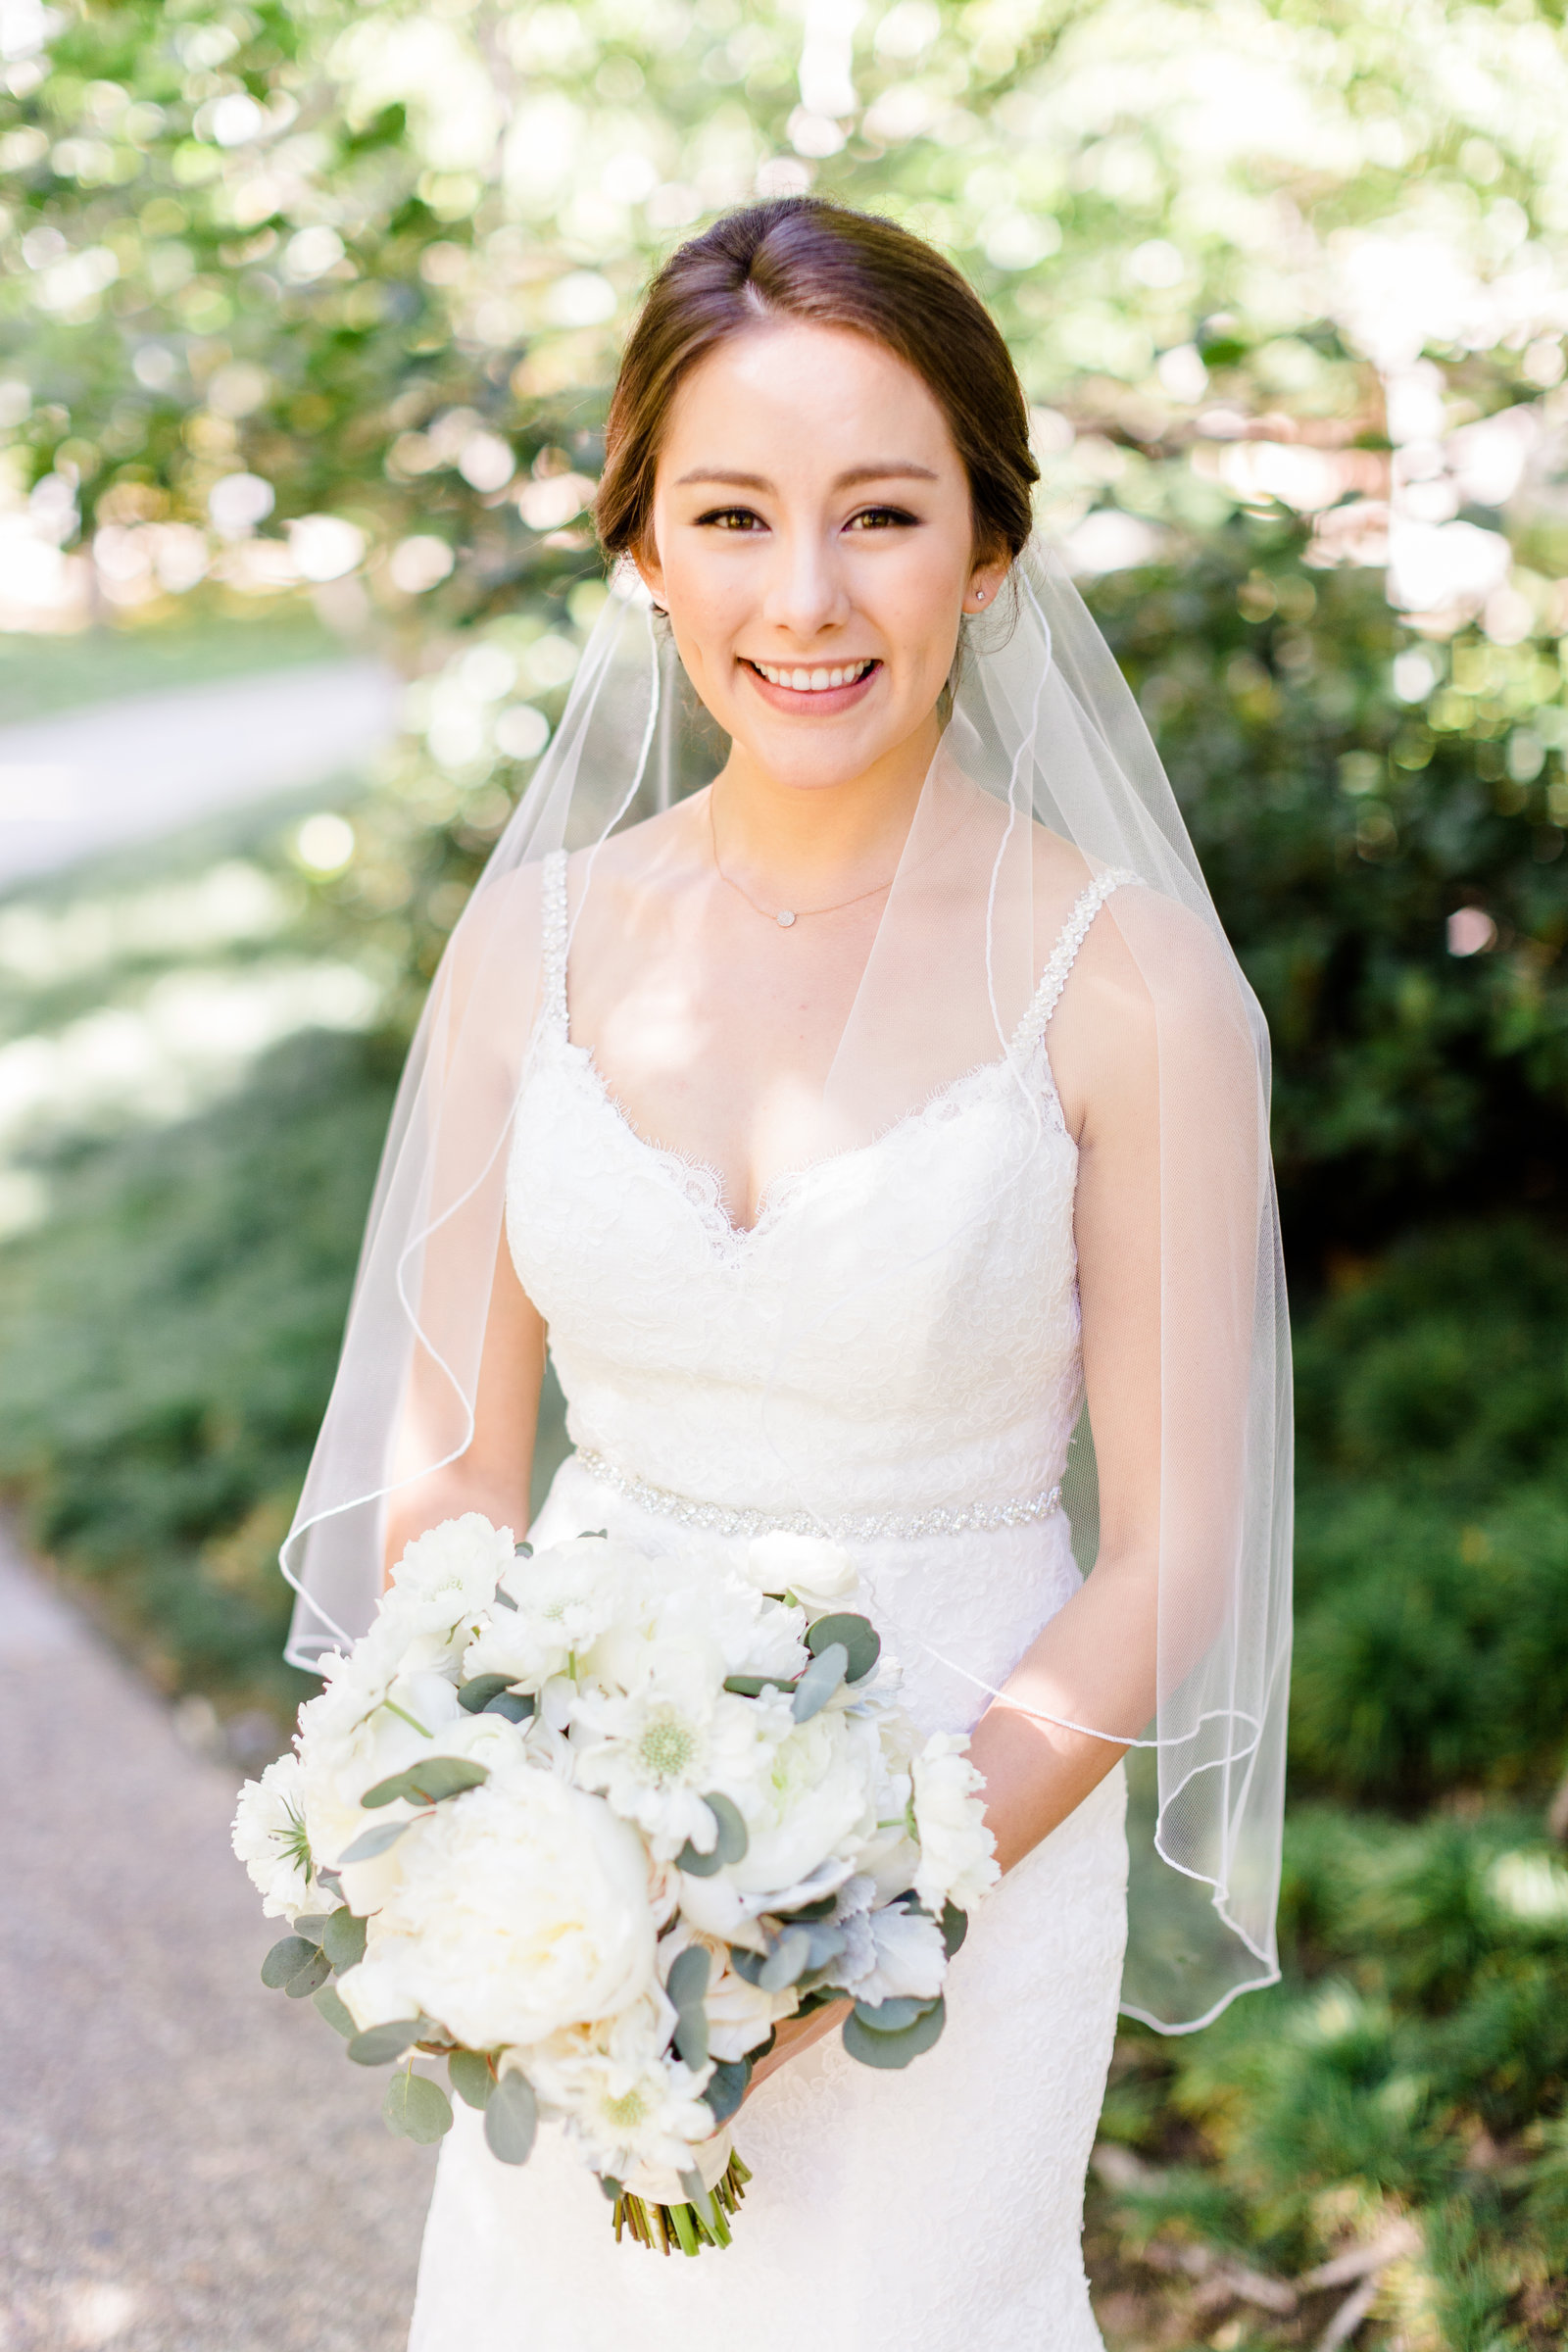 Bridal portrait with white peony bouquet